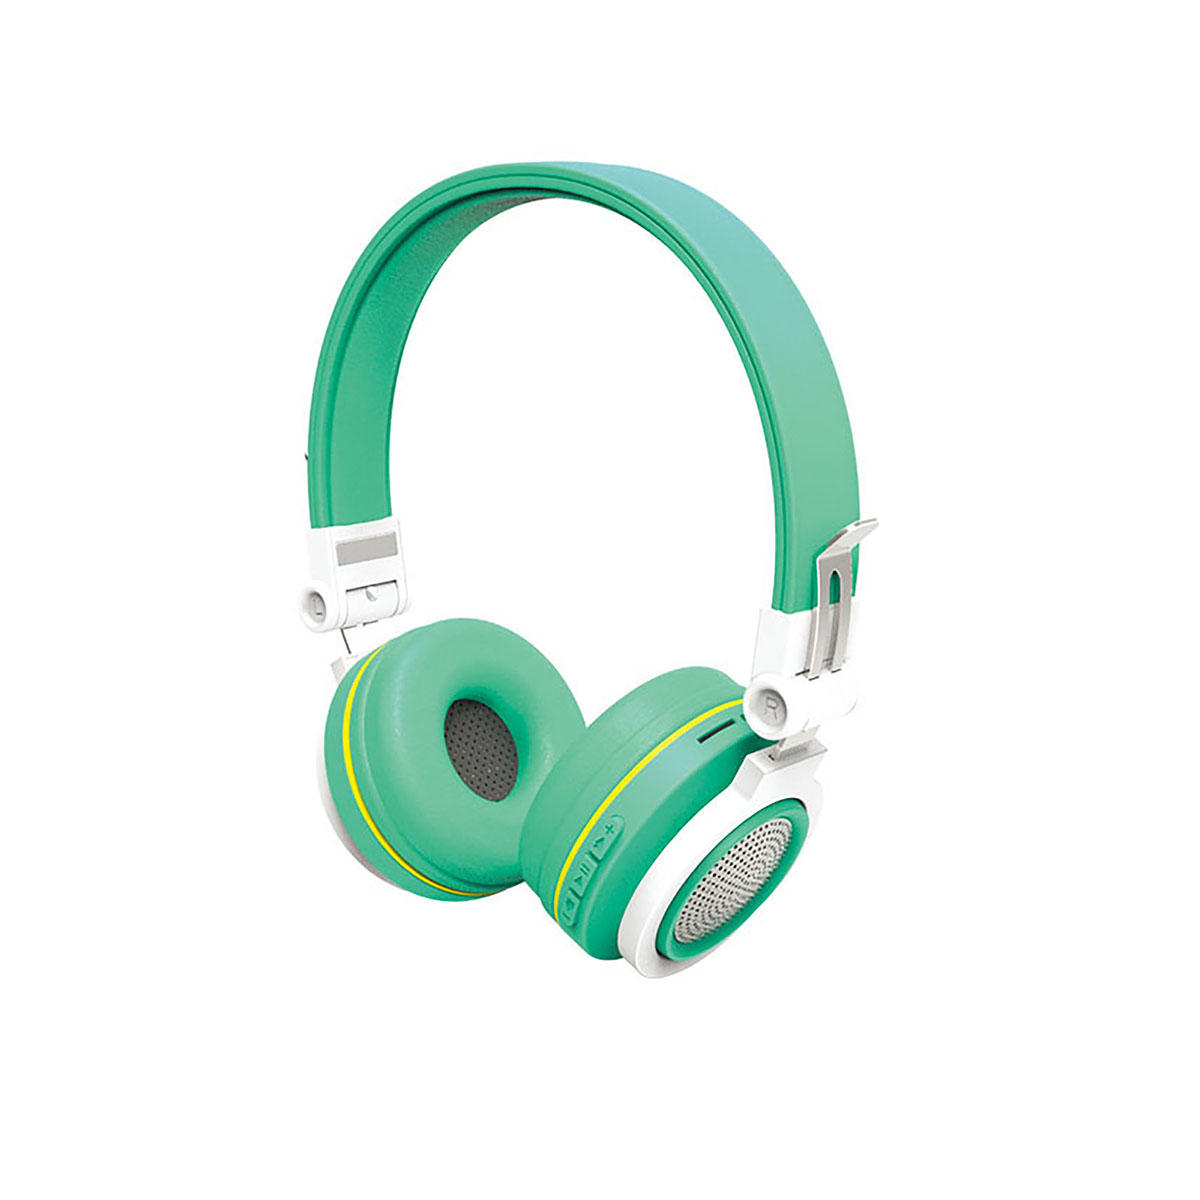 YueMai Acoustic Technology workout earbuds series for kids and adults-3